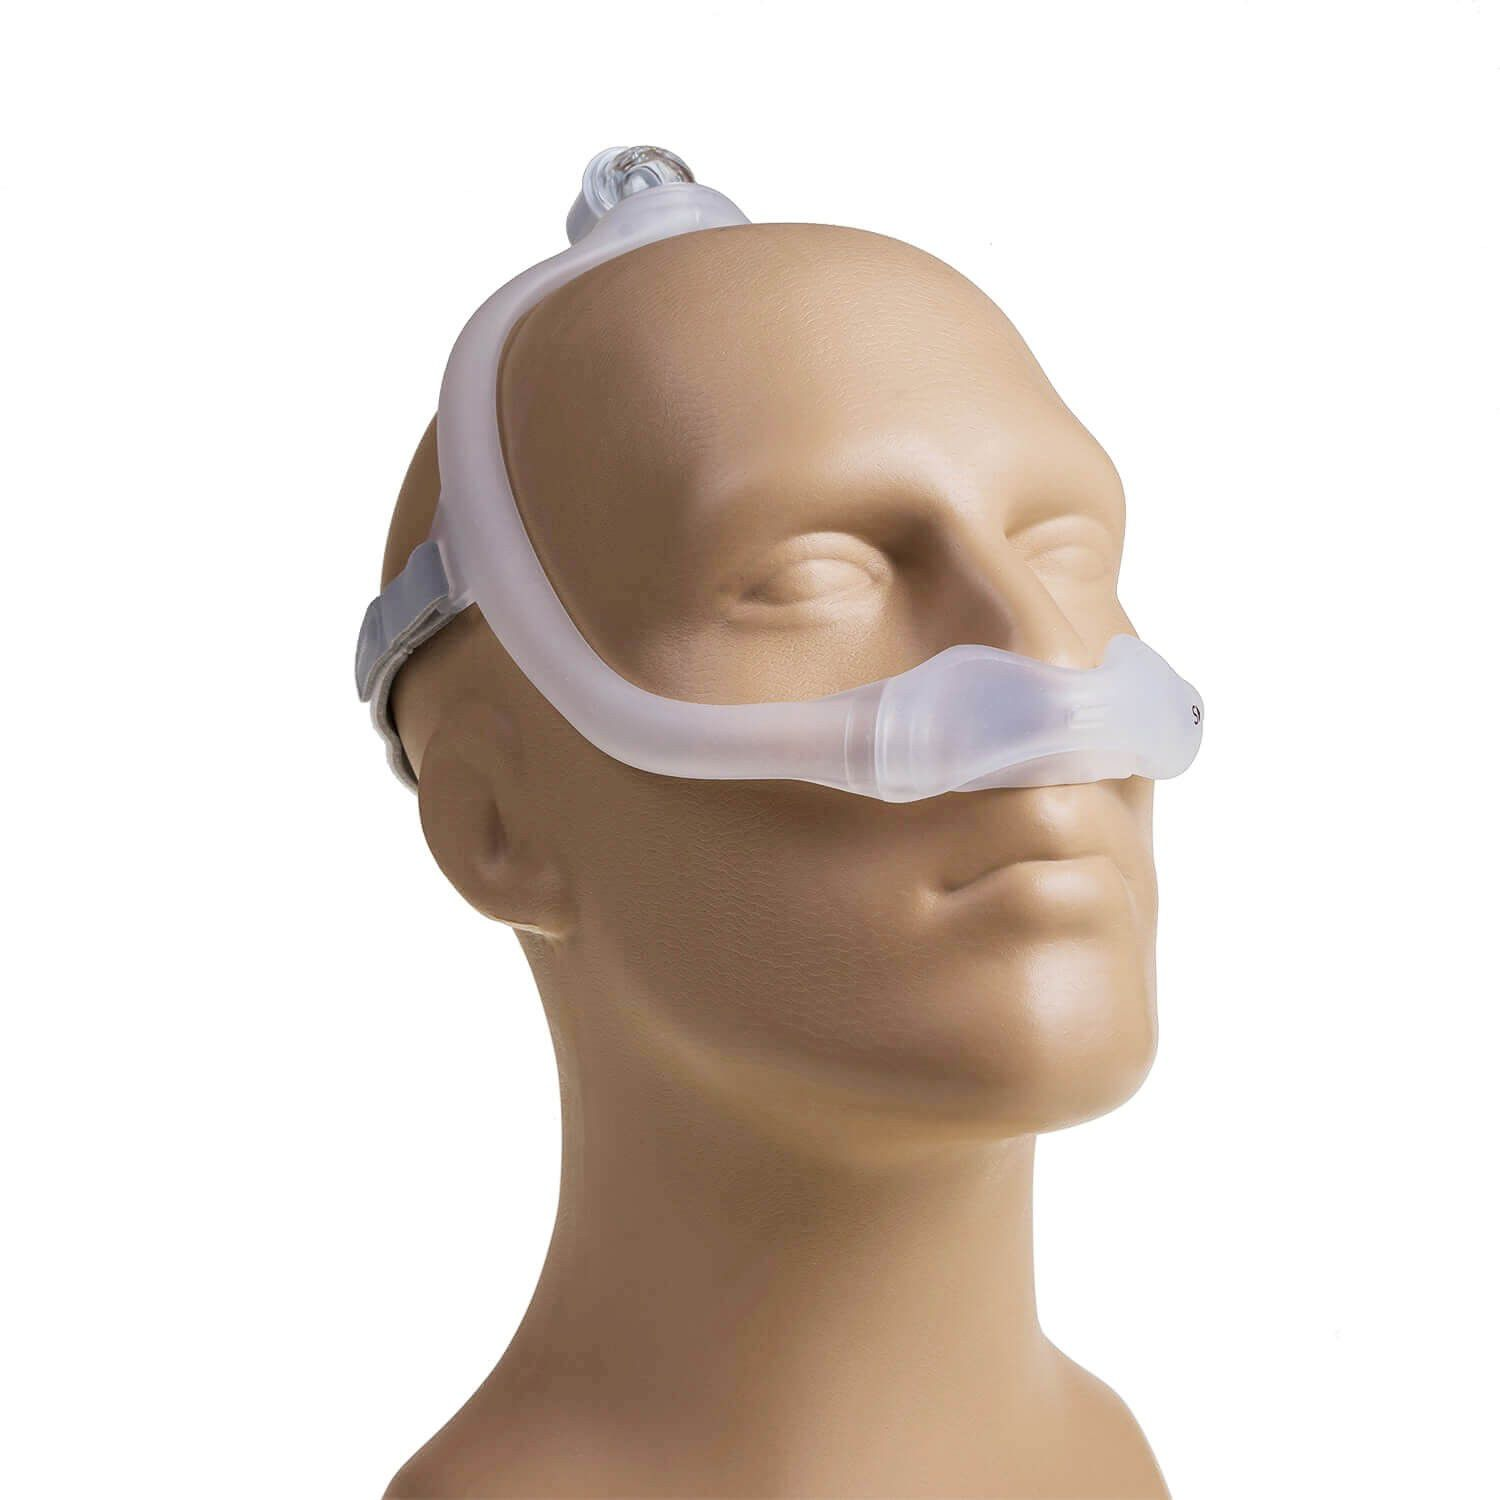 DreamWear Nasal - Philips Respironics